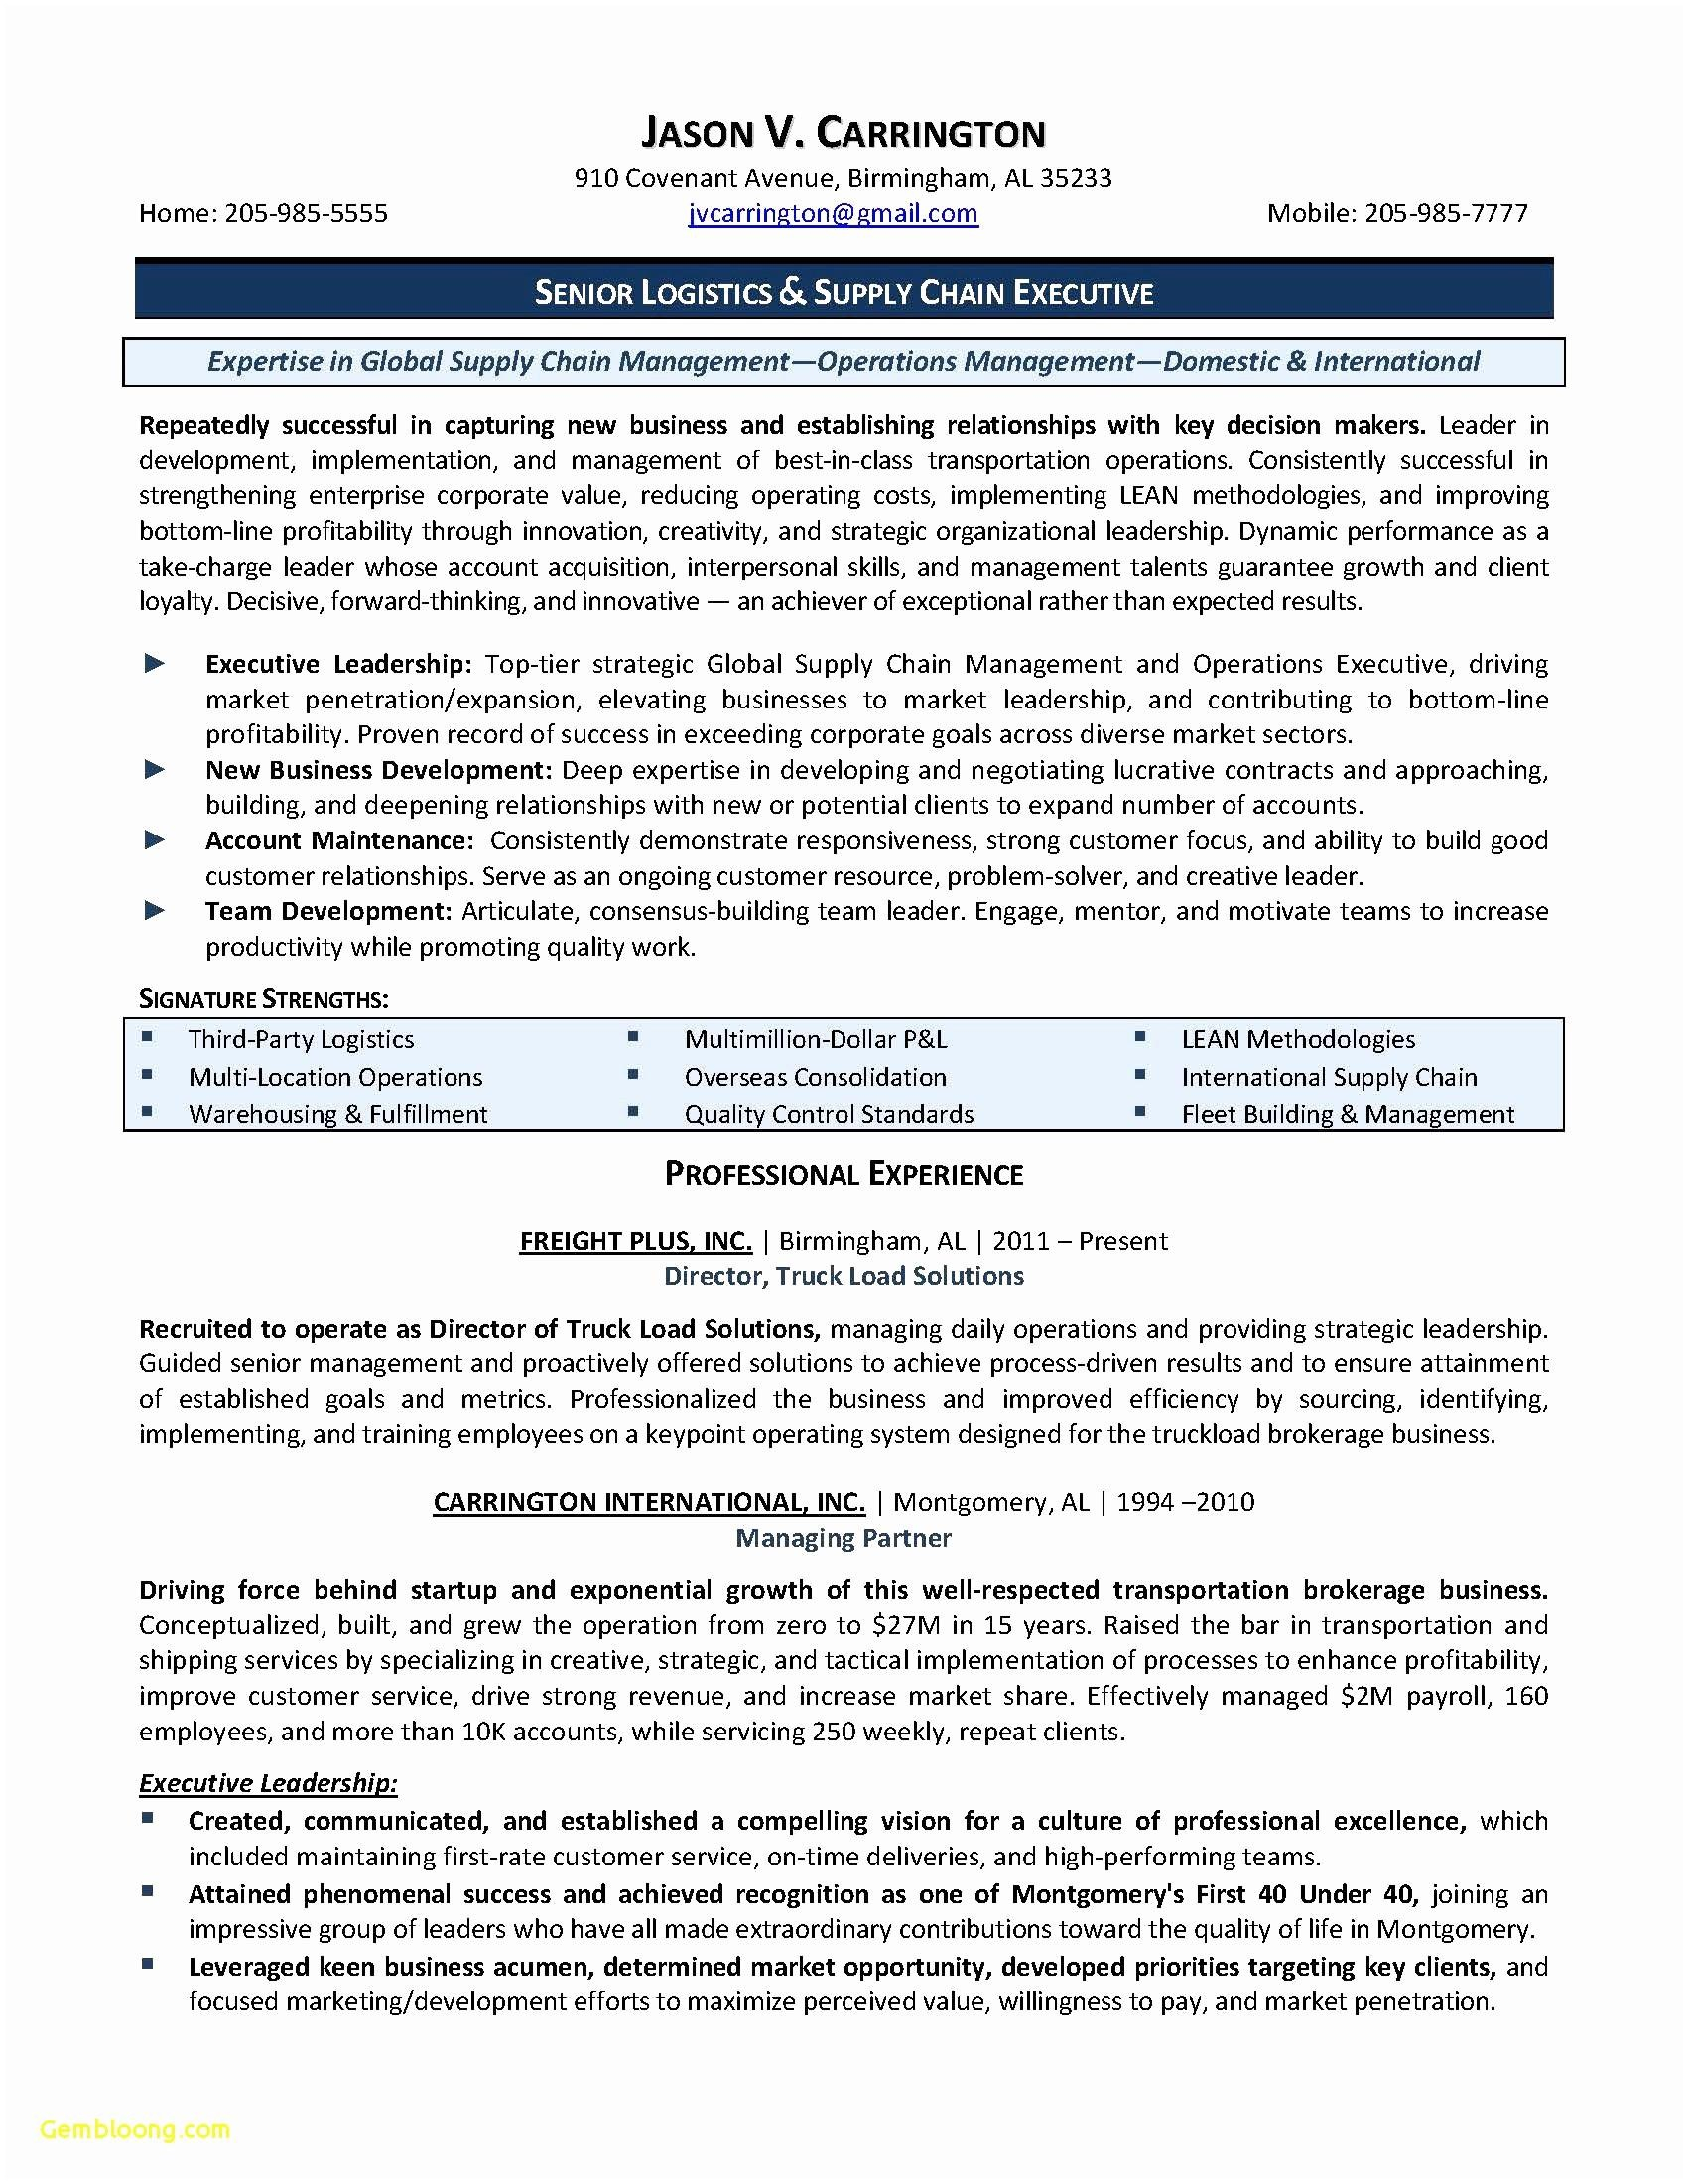 supply chain resume examples example-Resume format for Supply Chain Executive Unique New Resume Cv Executive Sample Luxury Resume Examples 0d 10-s